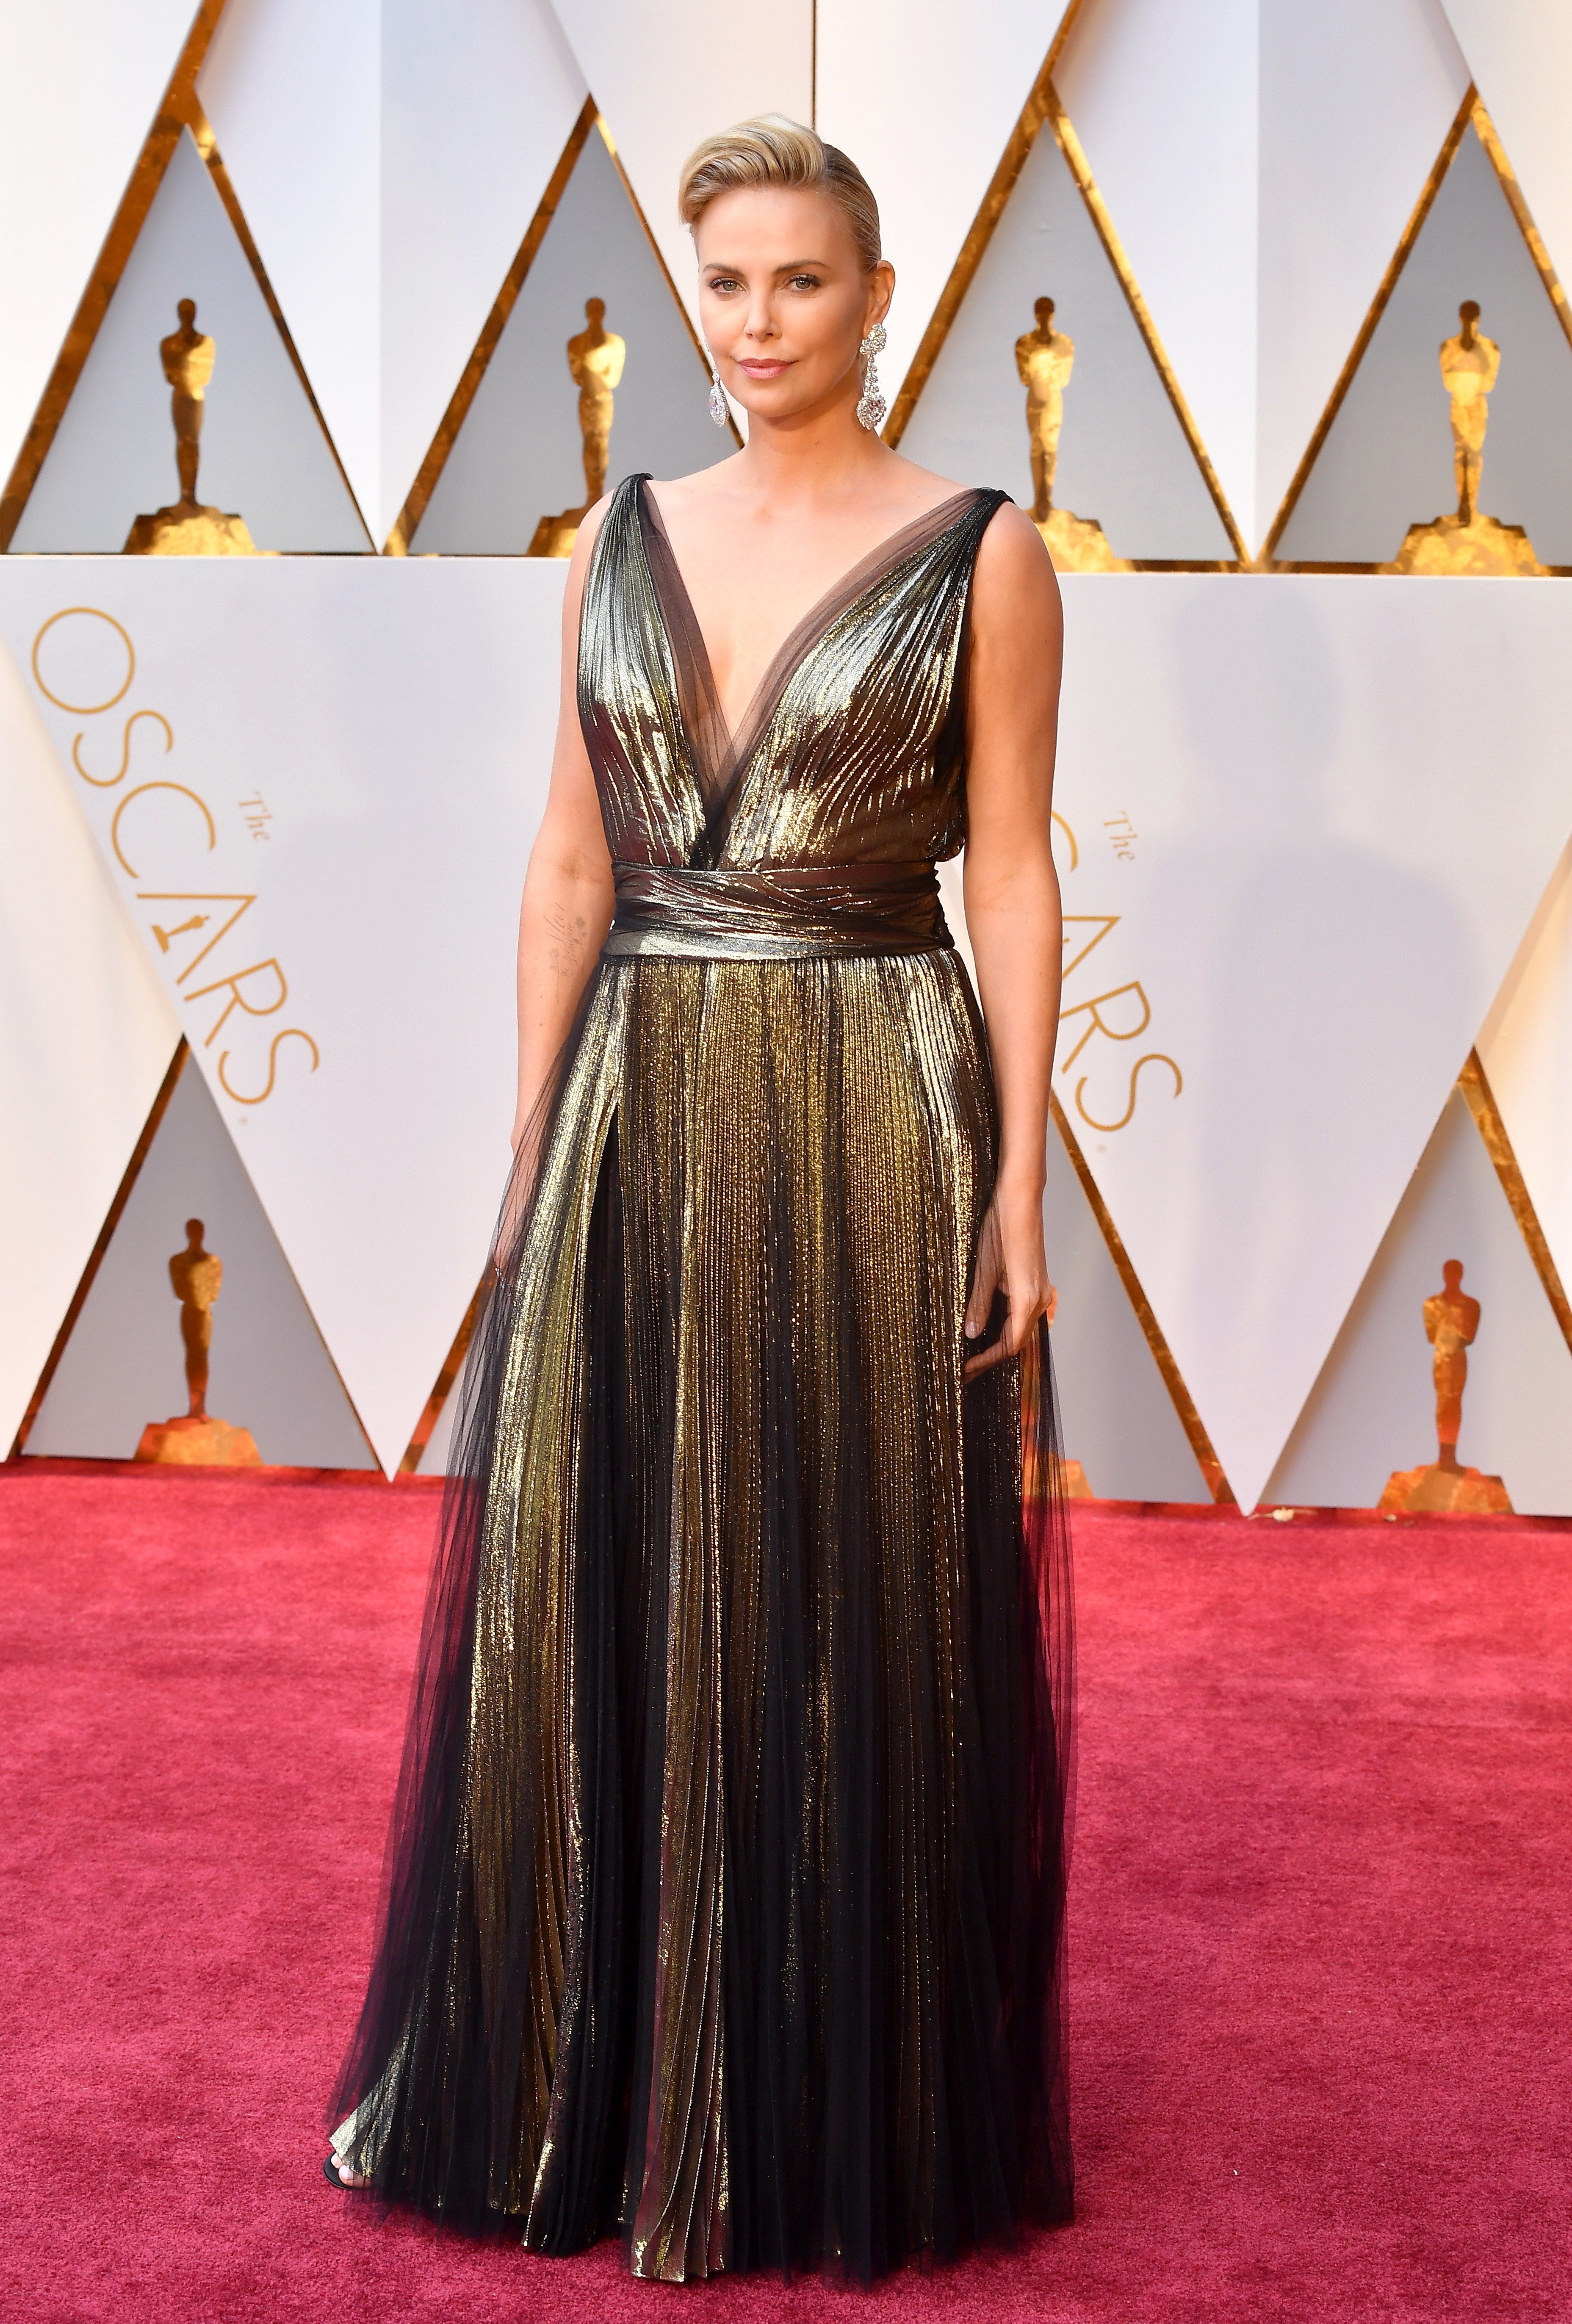 Oscars 2017 Fashion Live From The Red Carpet Celebrity Dresses Oscar Fashion Dior Couture Dresses